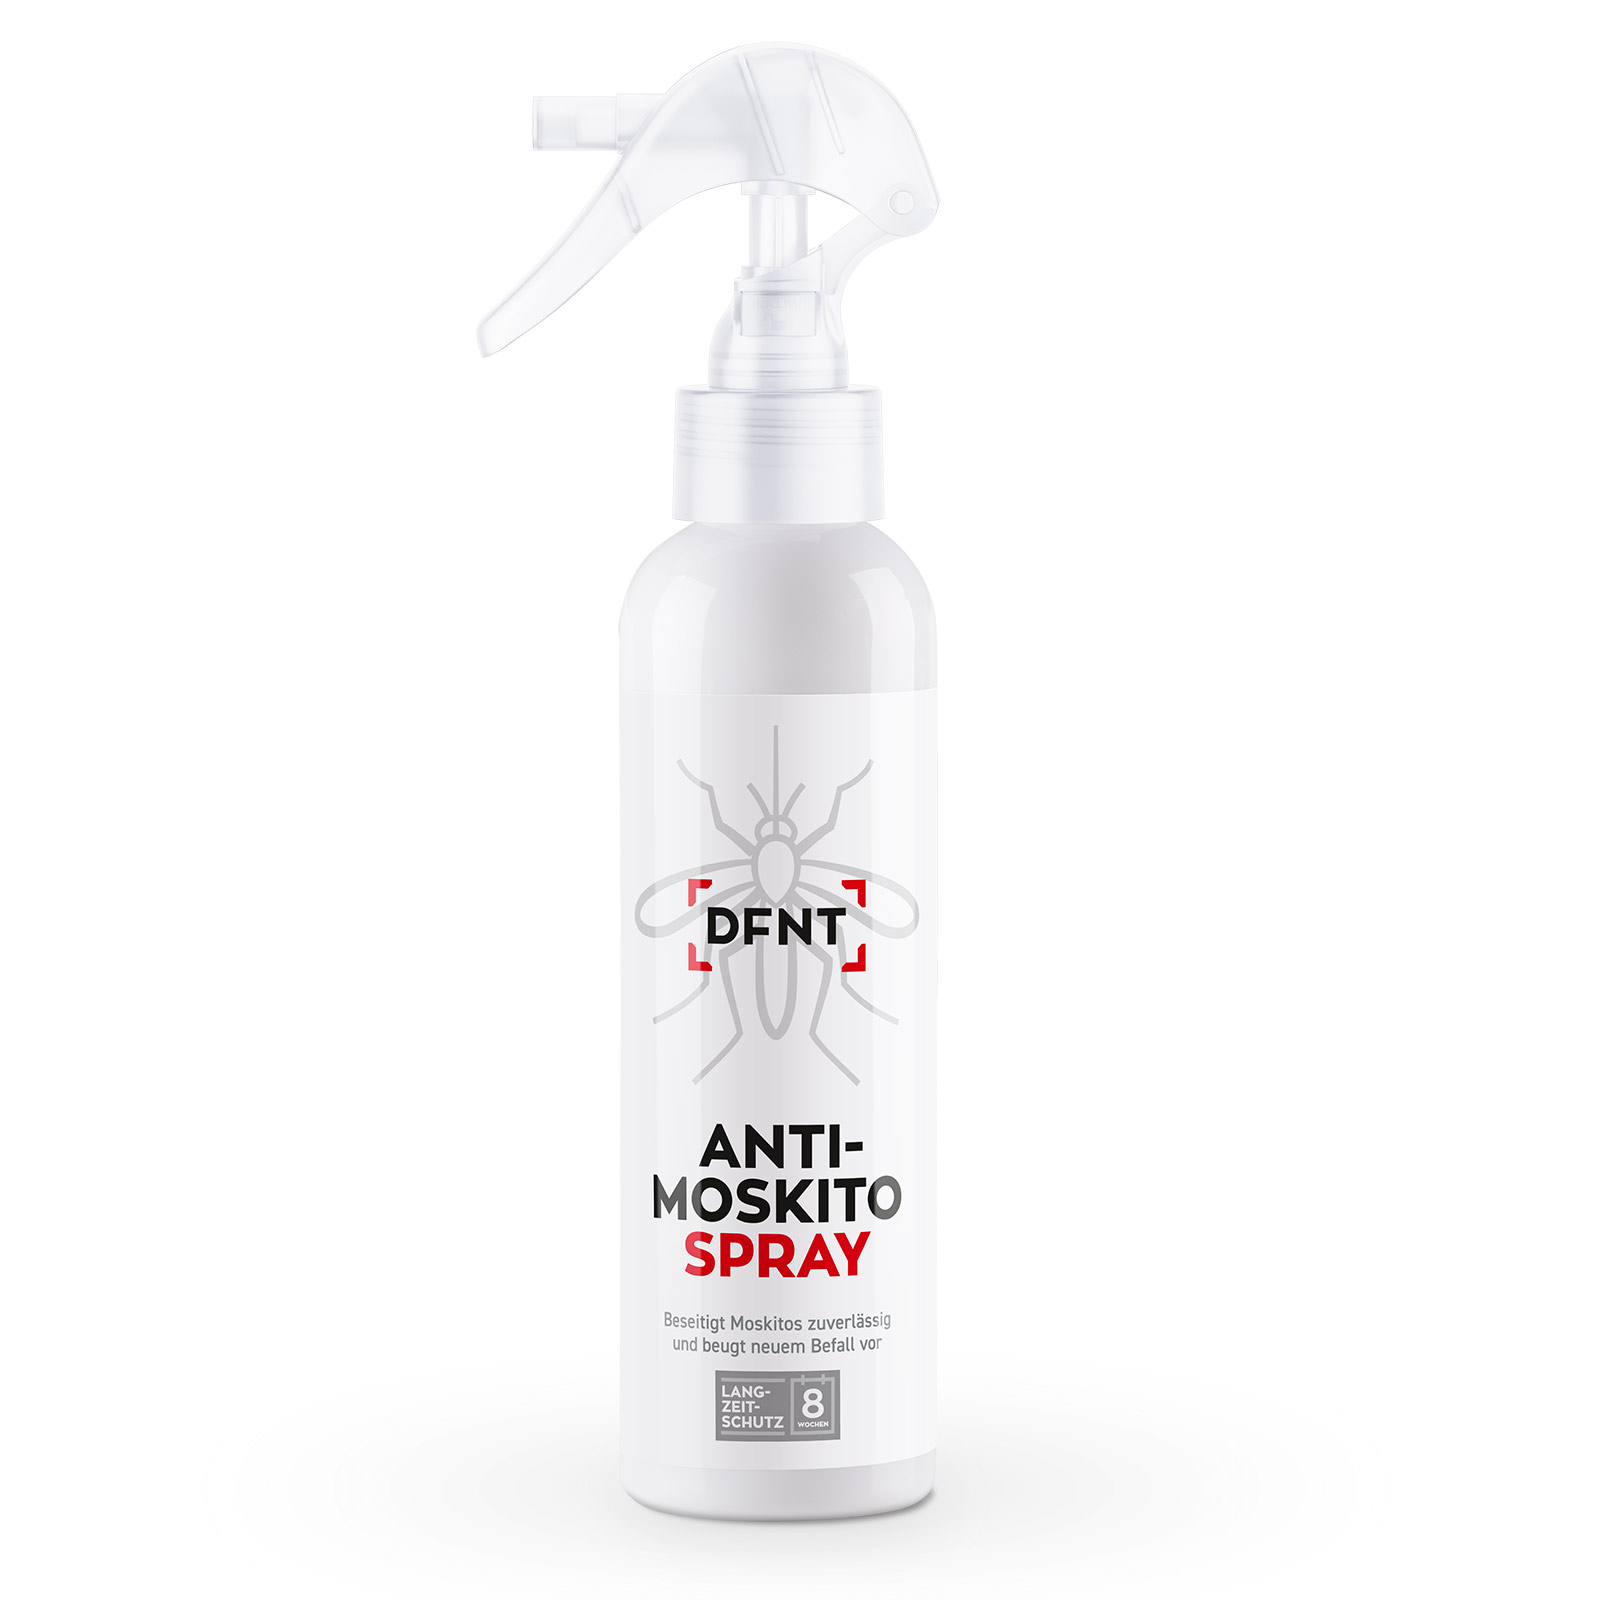 DFNT Anti-Moskito-Spray